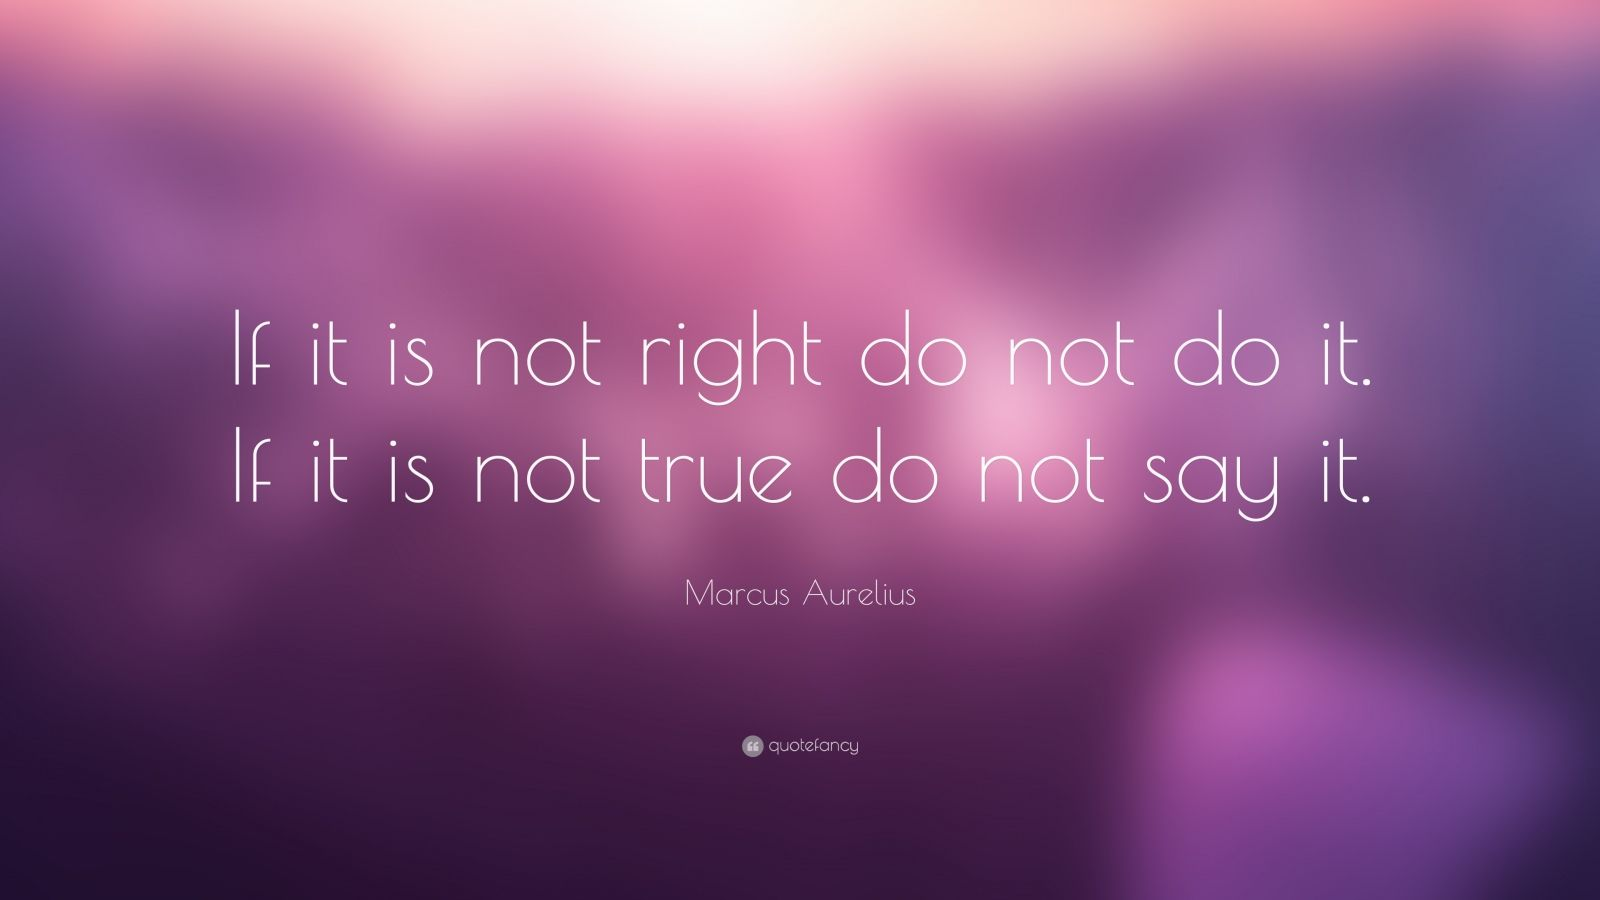 Socrates Wallpaper Quotes Marcus Aurelius Quote If It Is Not Right Do Not Do It